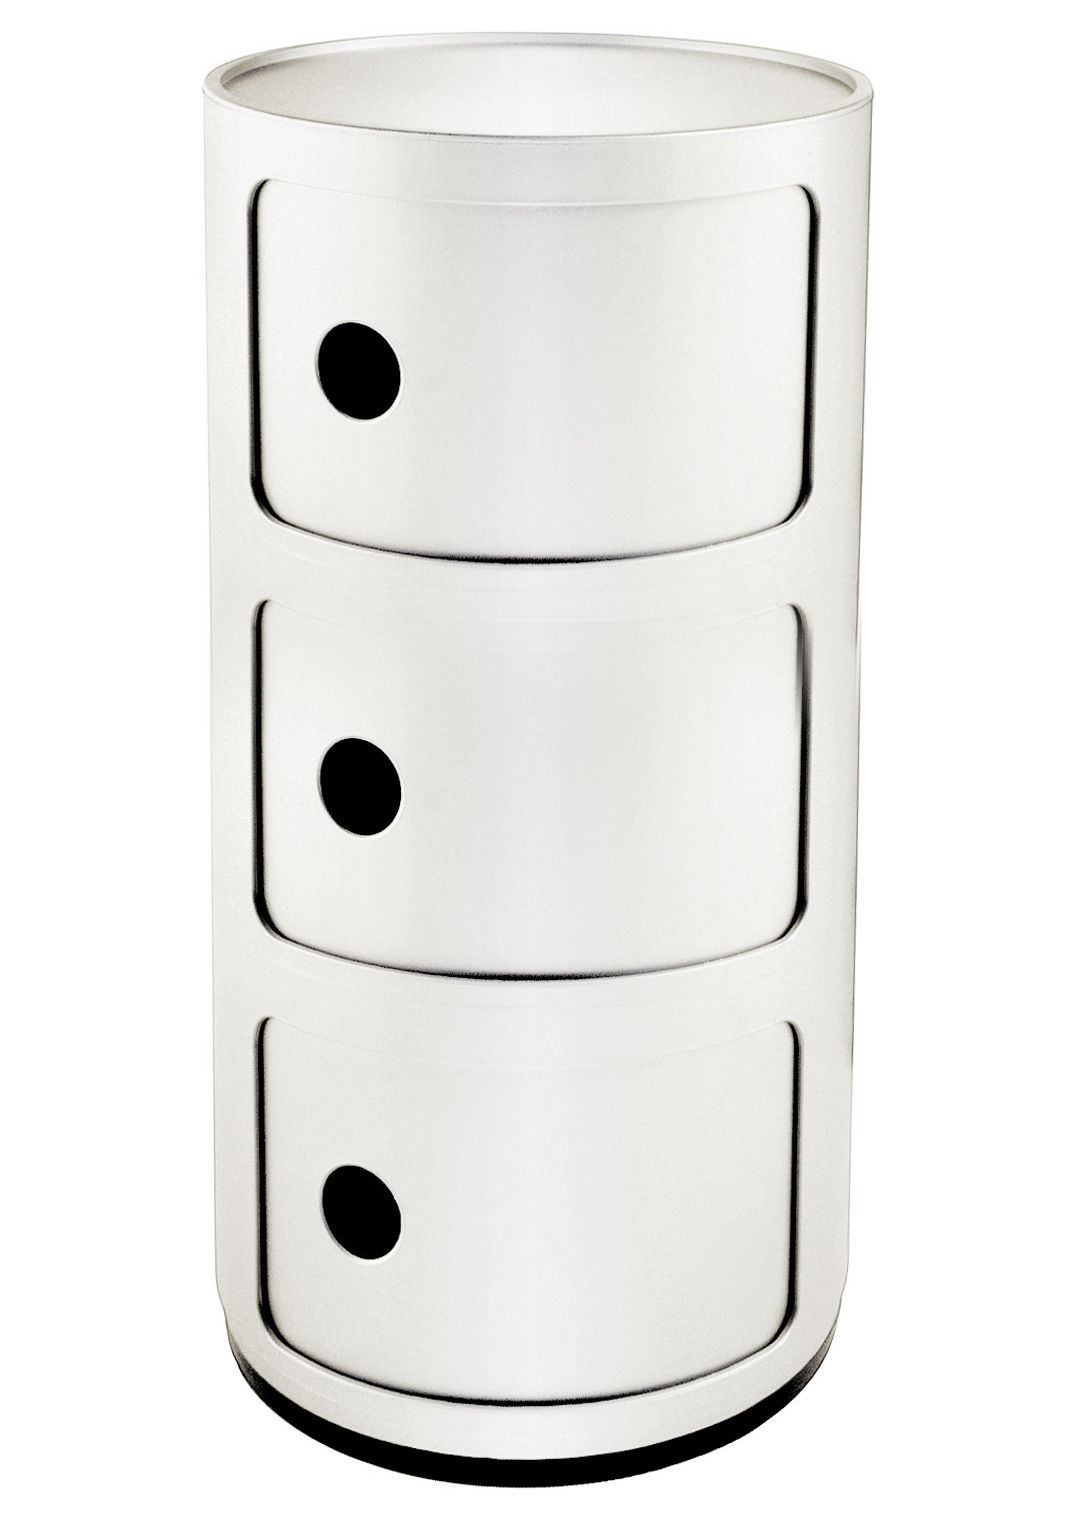 componibili storage 3 elements white by kartell. Black Bedroom Furniture Sets. Home Design Ideas